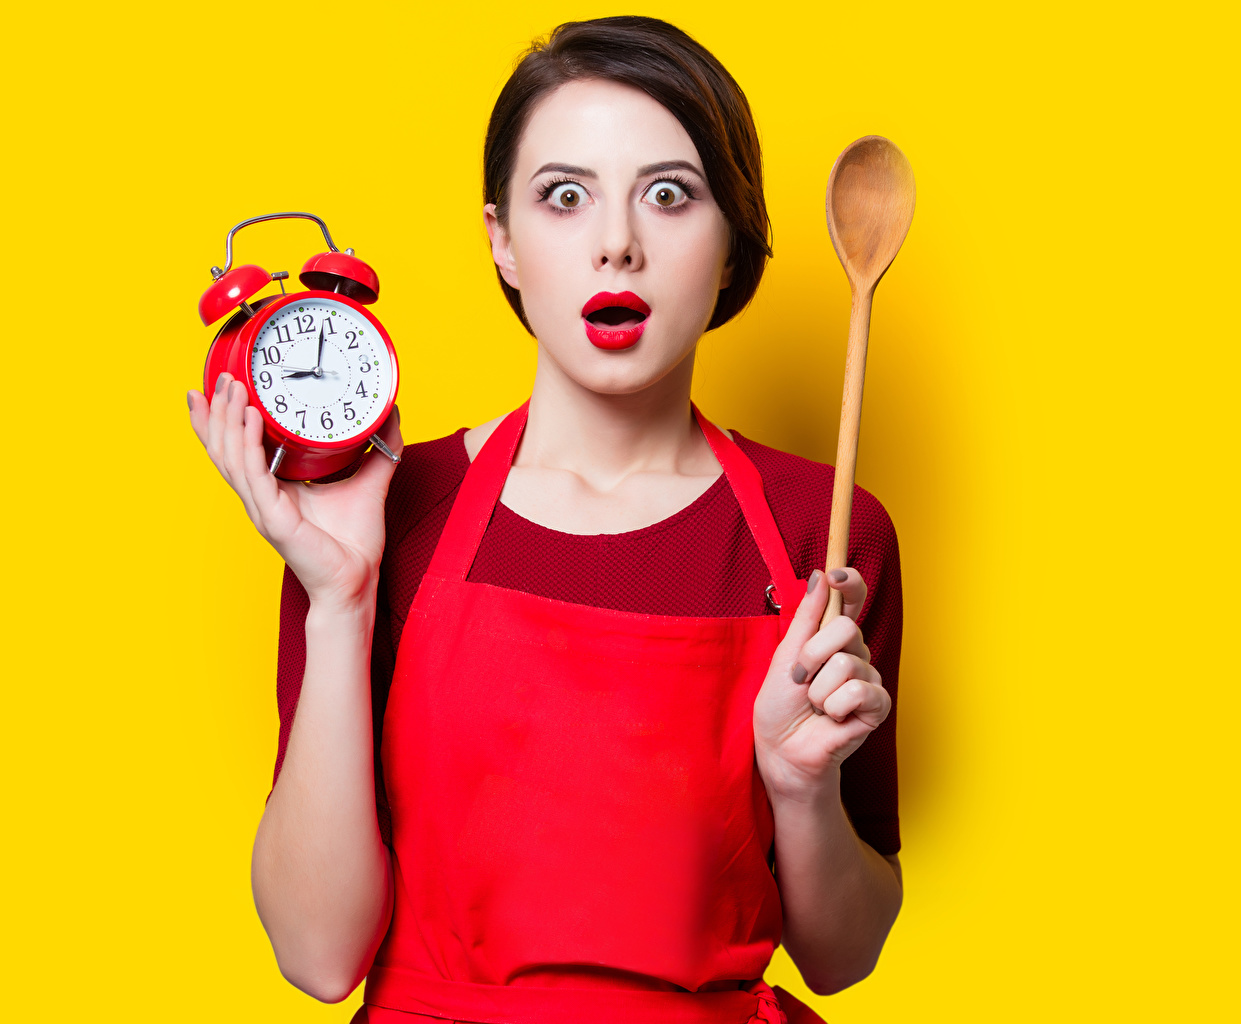 Wallpaper Brown haired Surprise emotion Girls Clock Alarm clock Spoon Colored background